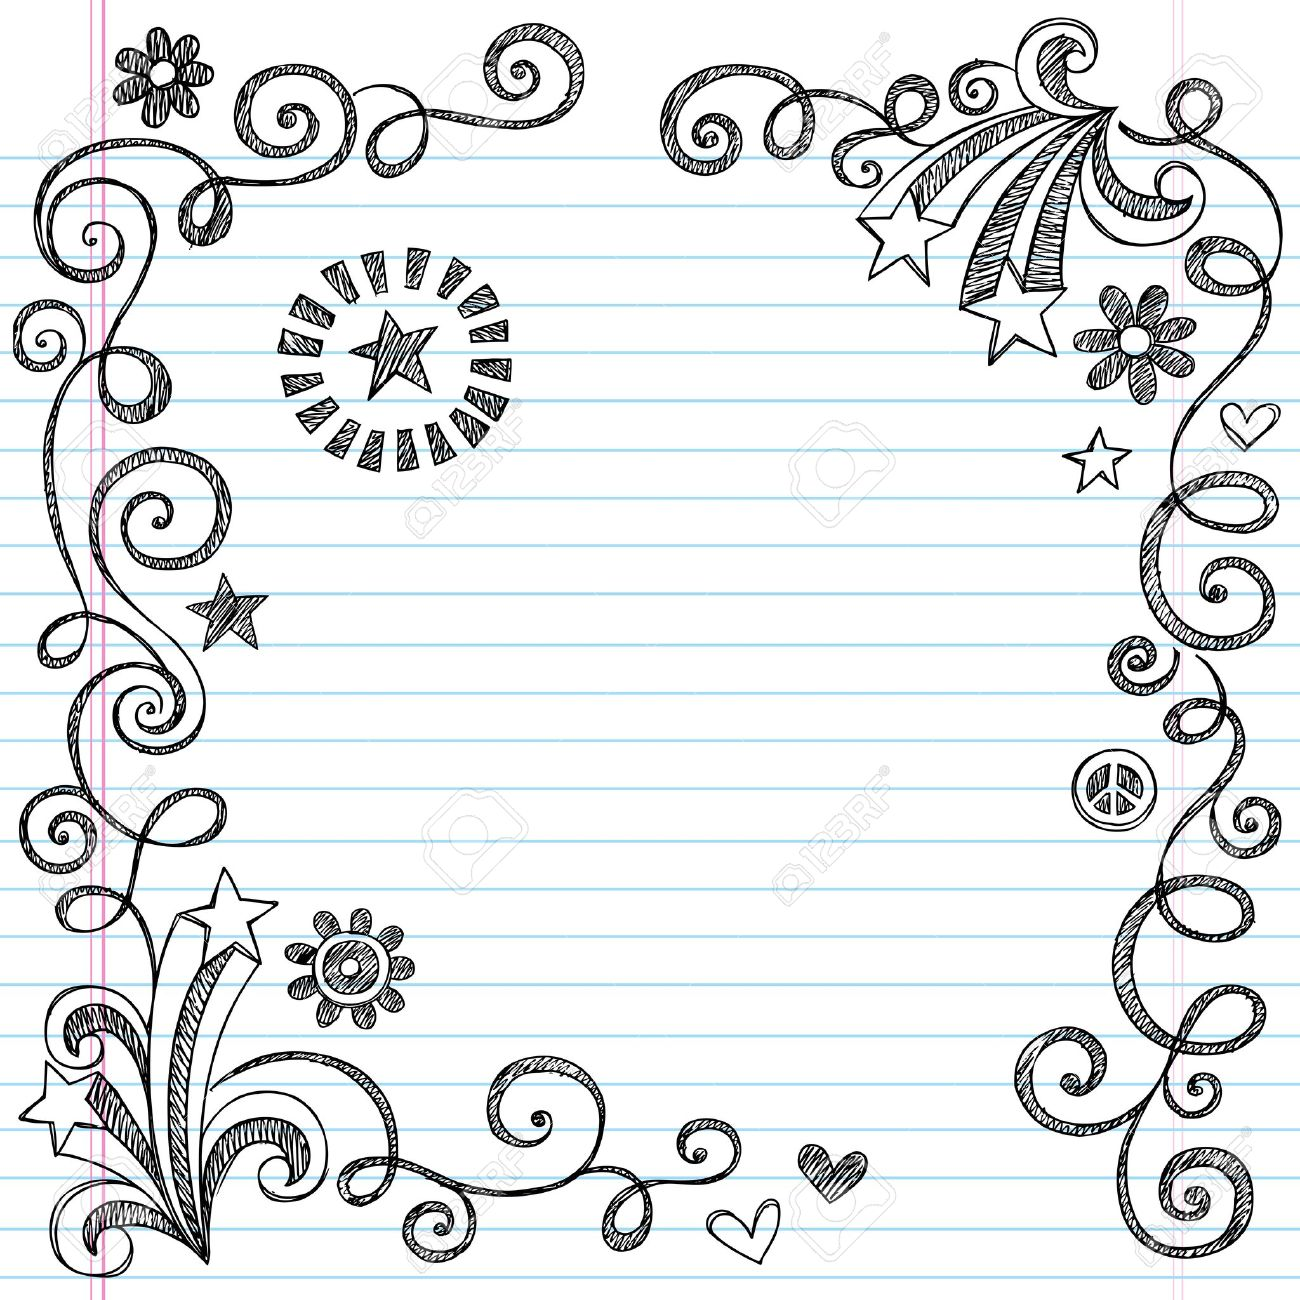 back to school sketchy notebook doodle border with stars and